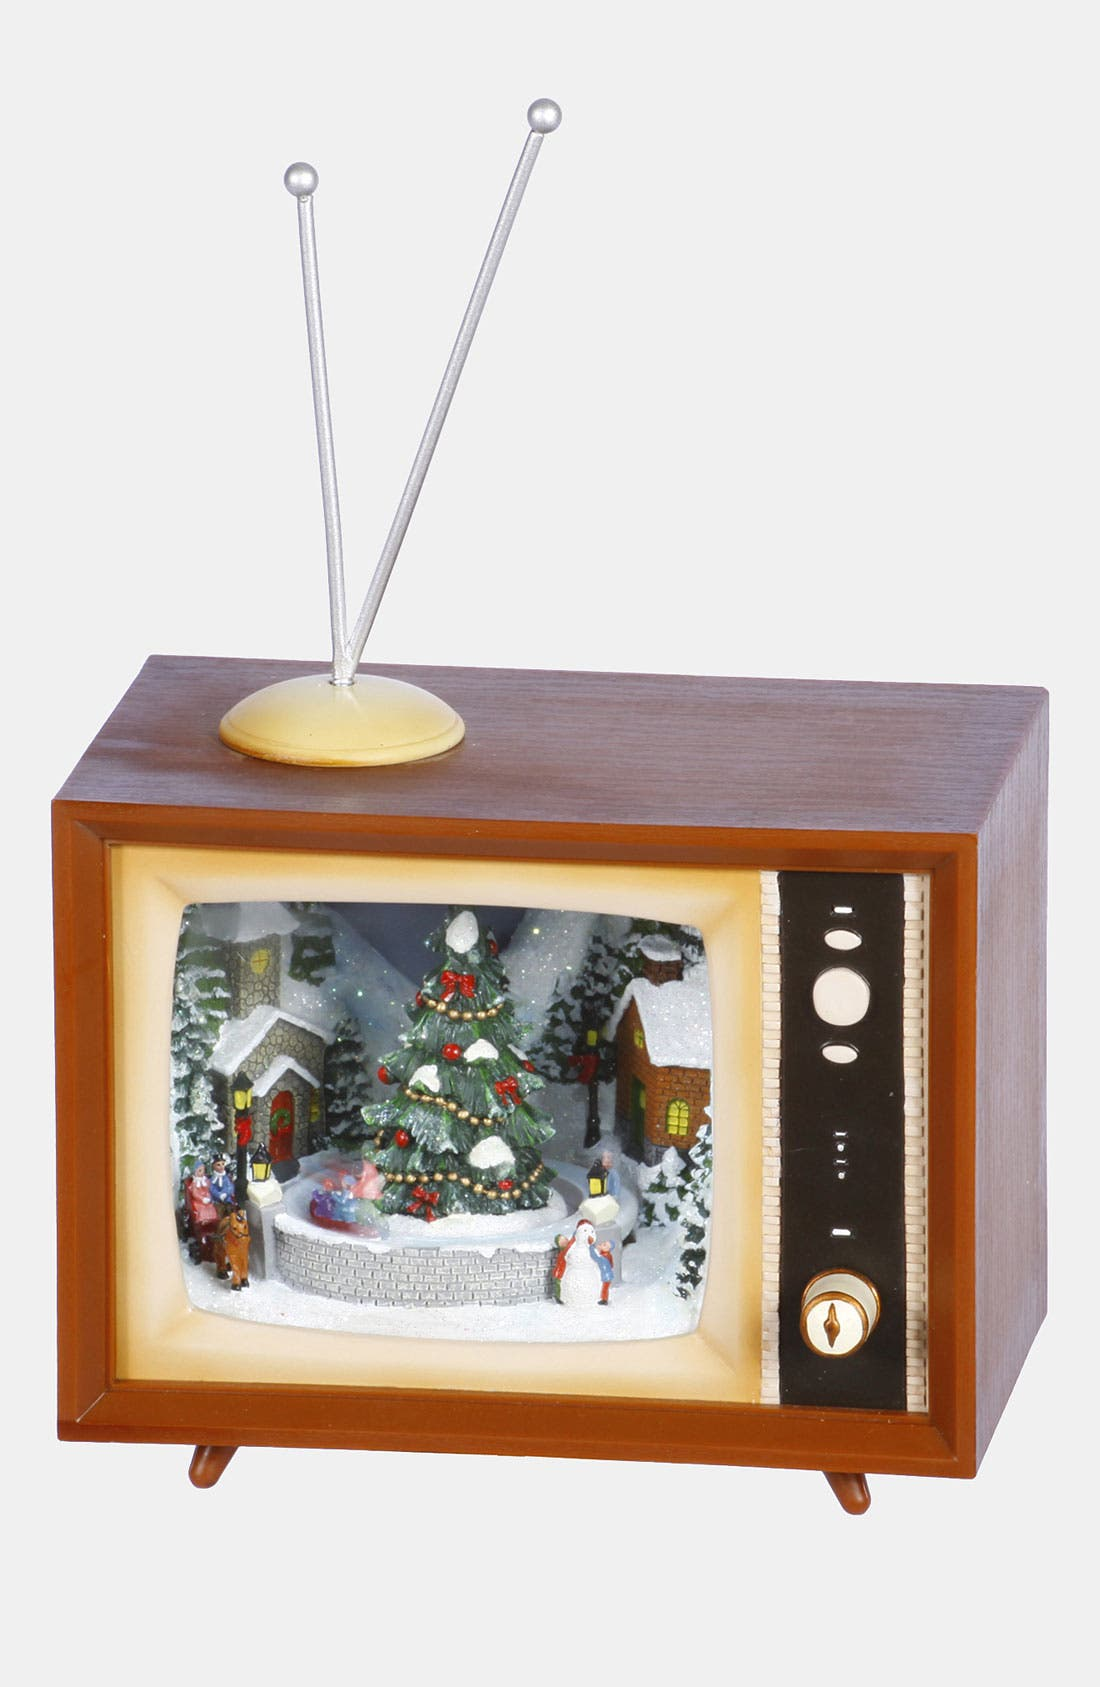 Alternate Image 1 Selected - Winward 'Mini TV - Square' Music Box